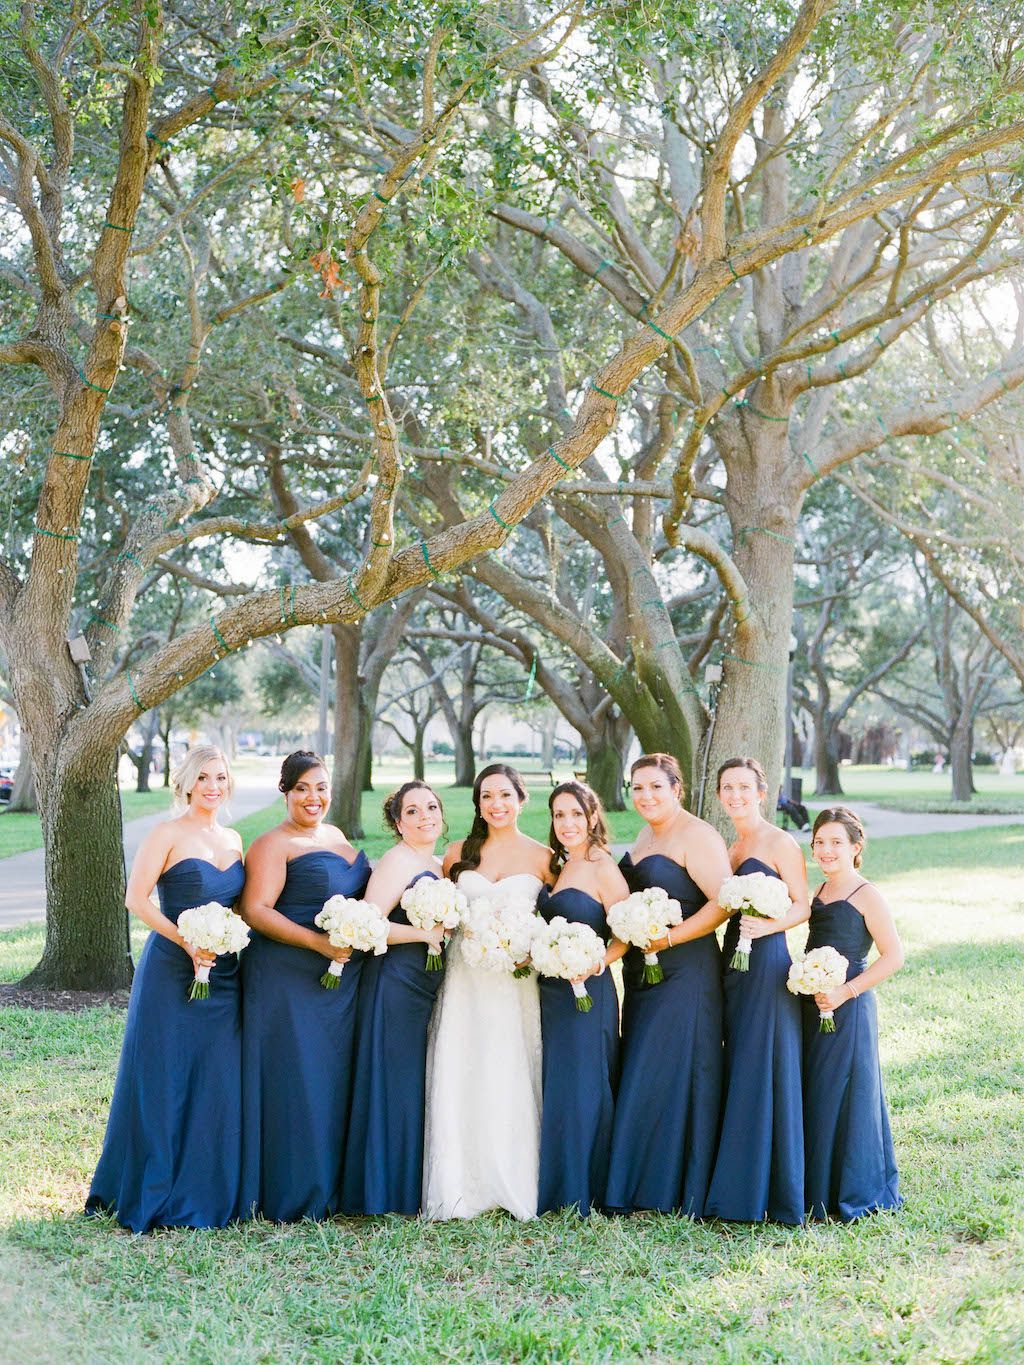 Outdoor Park Bridal Party Portrait, Bridesmaids in Floorlength Sweetheart Navy Blue Dresses with White Bouquets | Tampa Bay Wedding Hair Michele Renee The Studio | St. Petersburg Makeup LDM Beauty Group | Lindsay Does Makeup